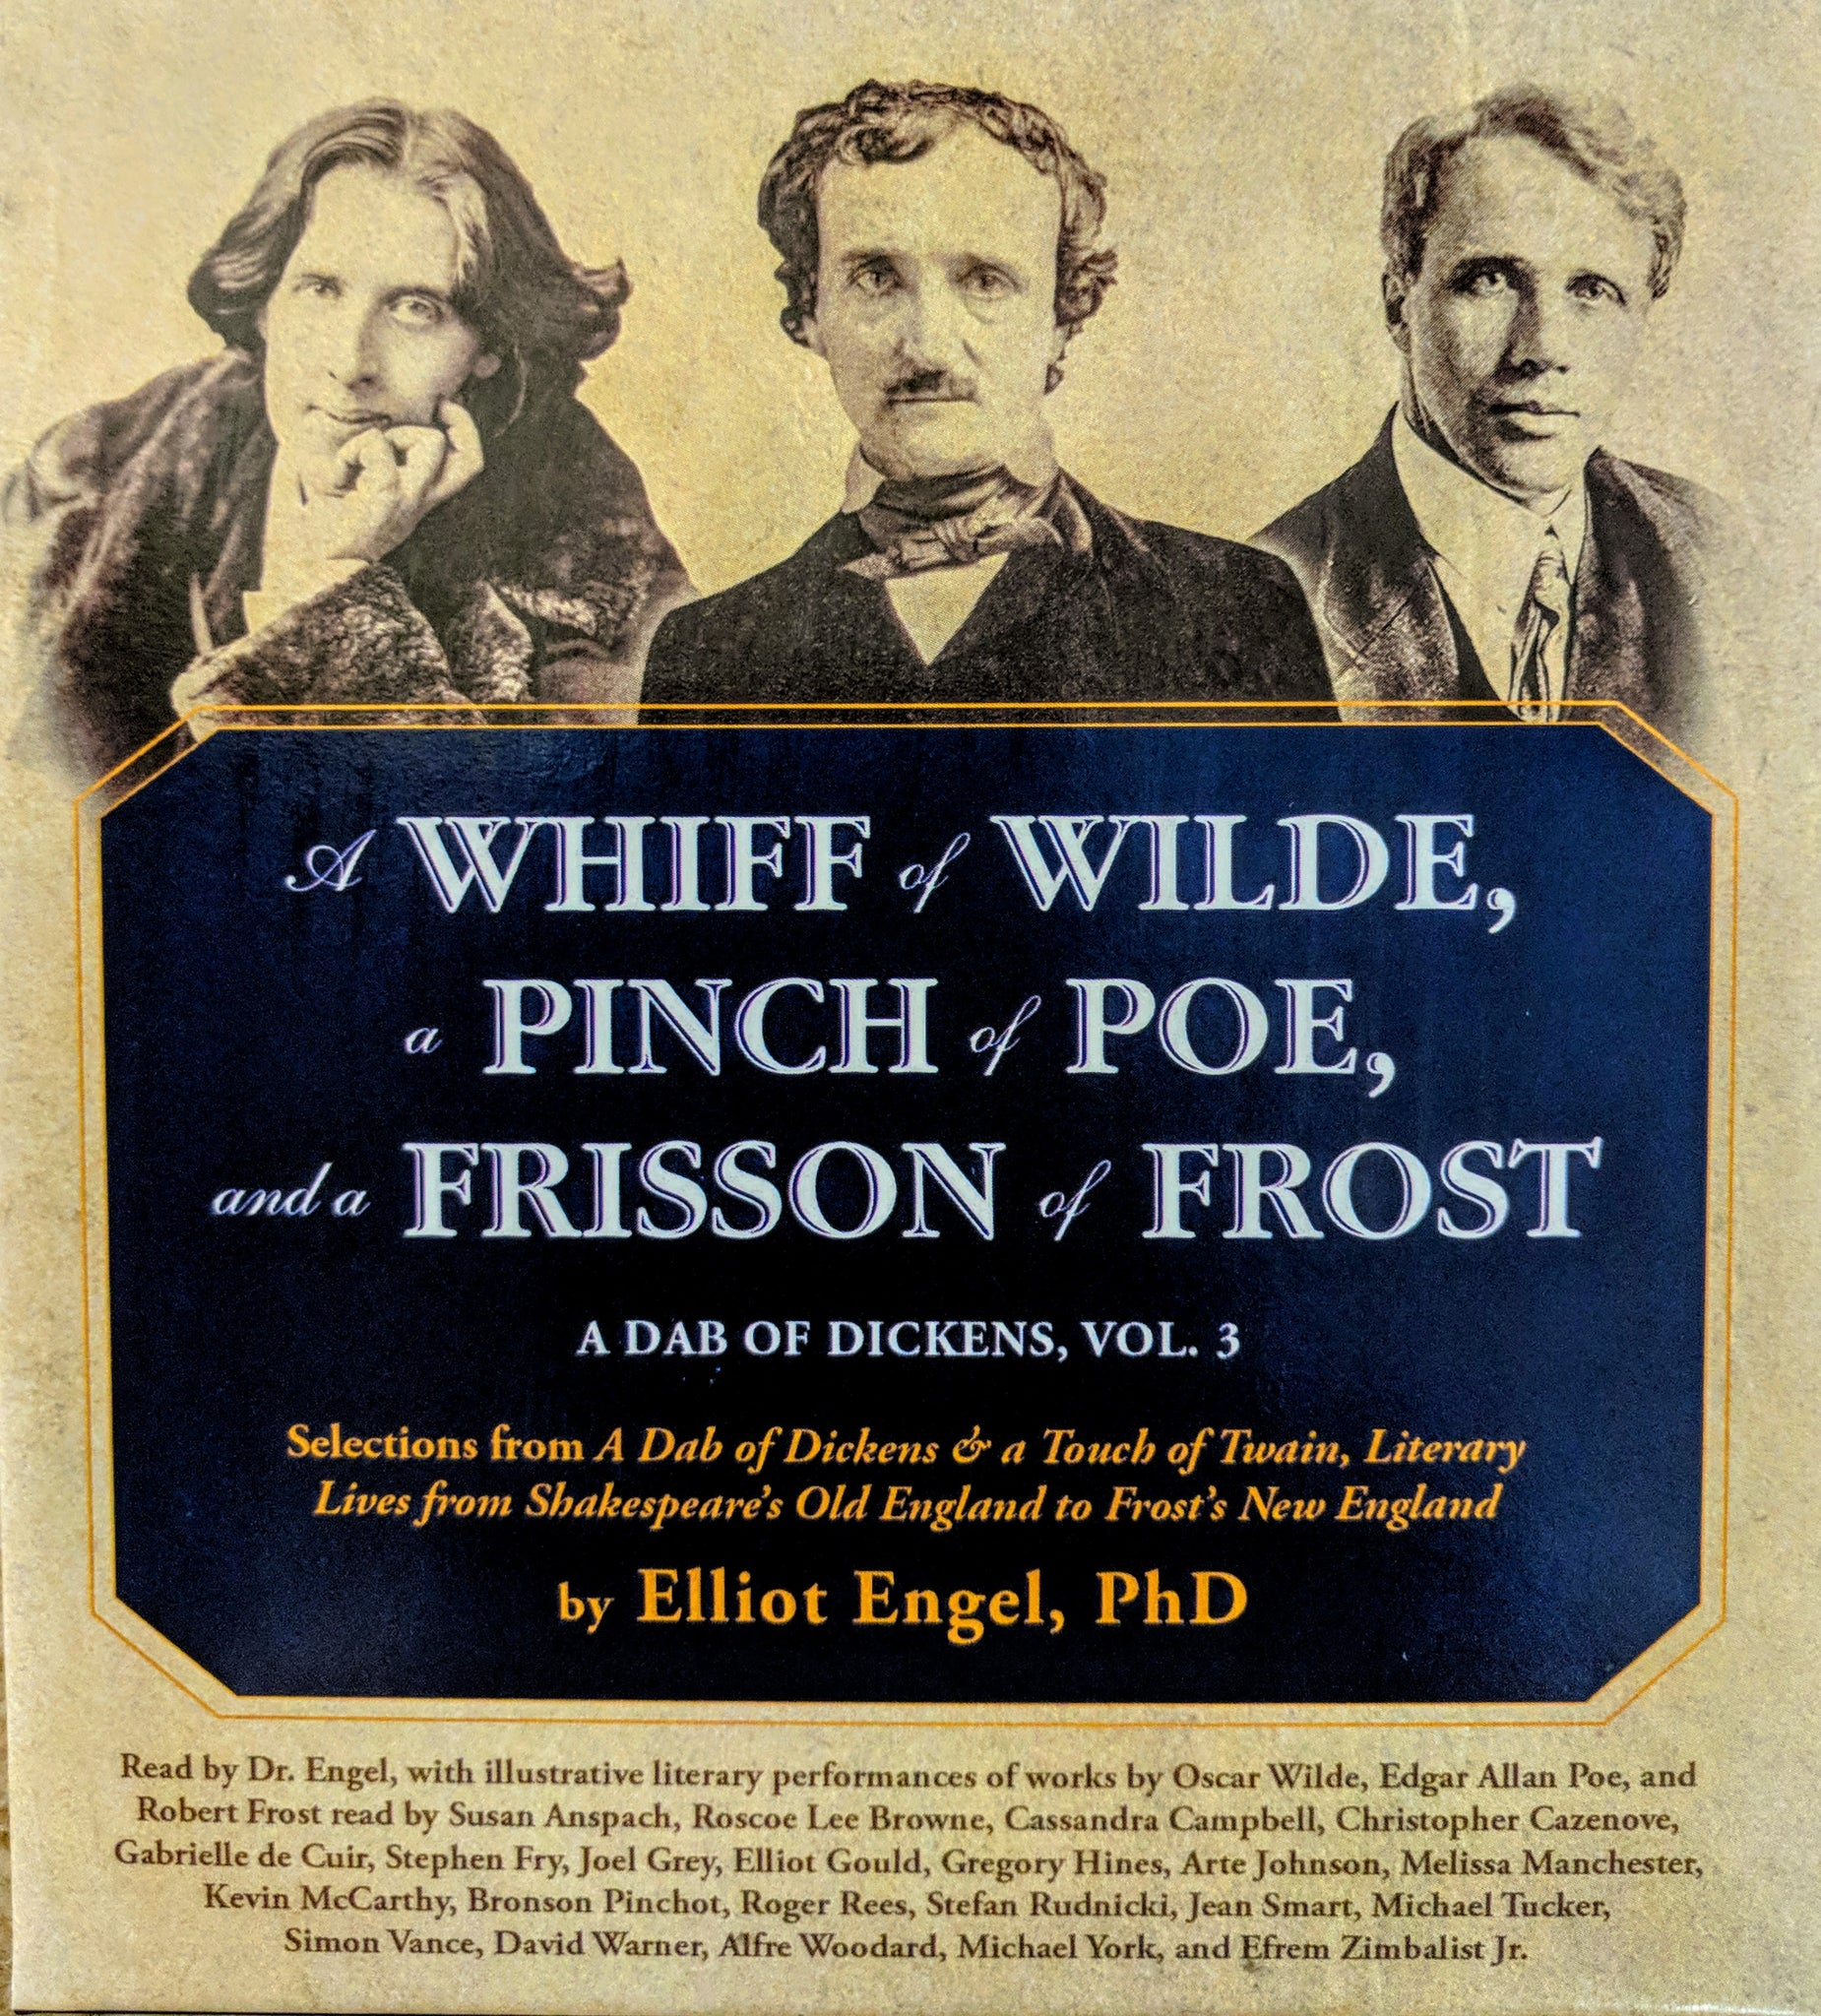 A Whiff of Wilde, a Pinch of Poe, and a Frisson of Frost 6-CD set